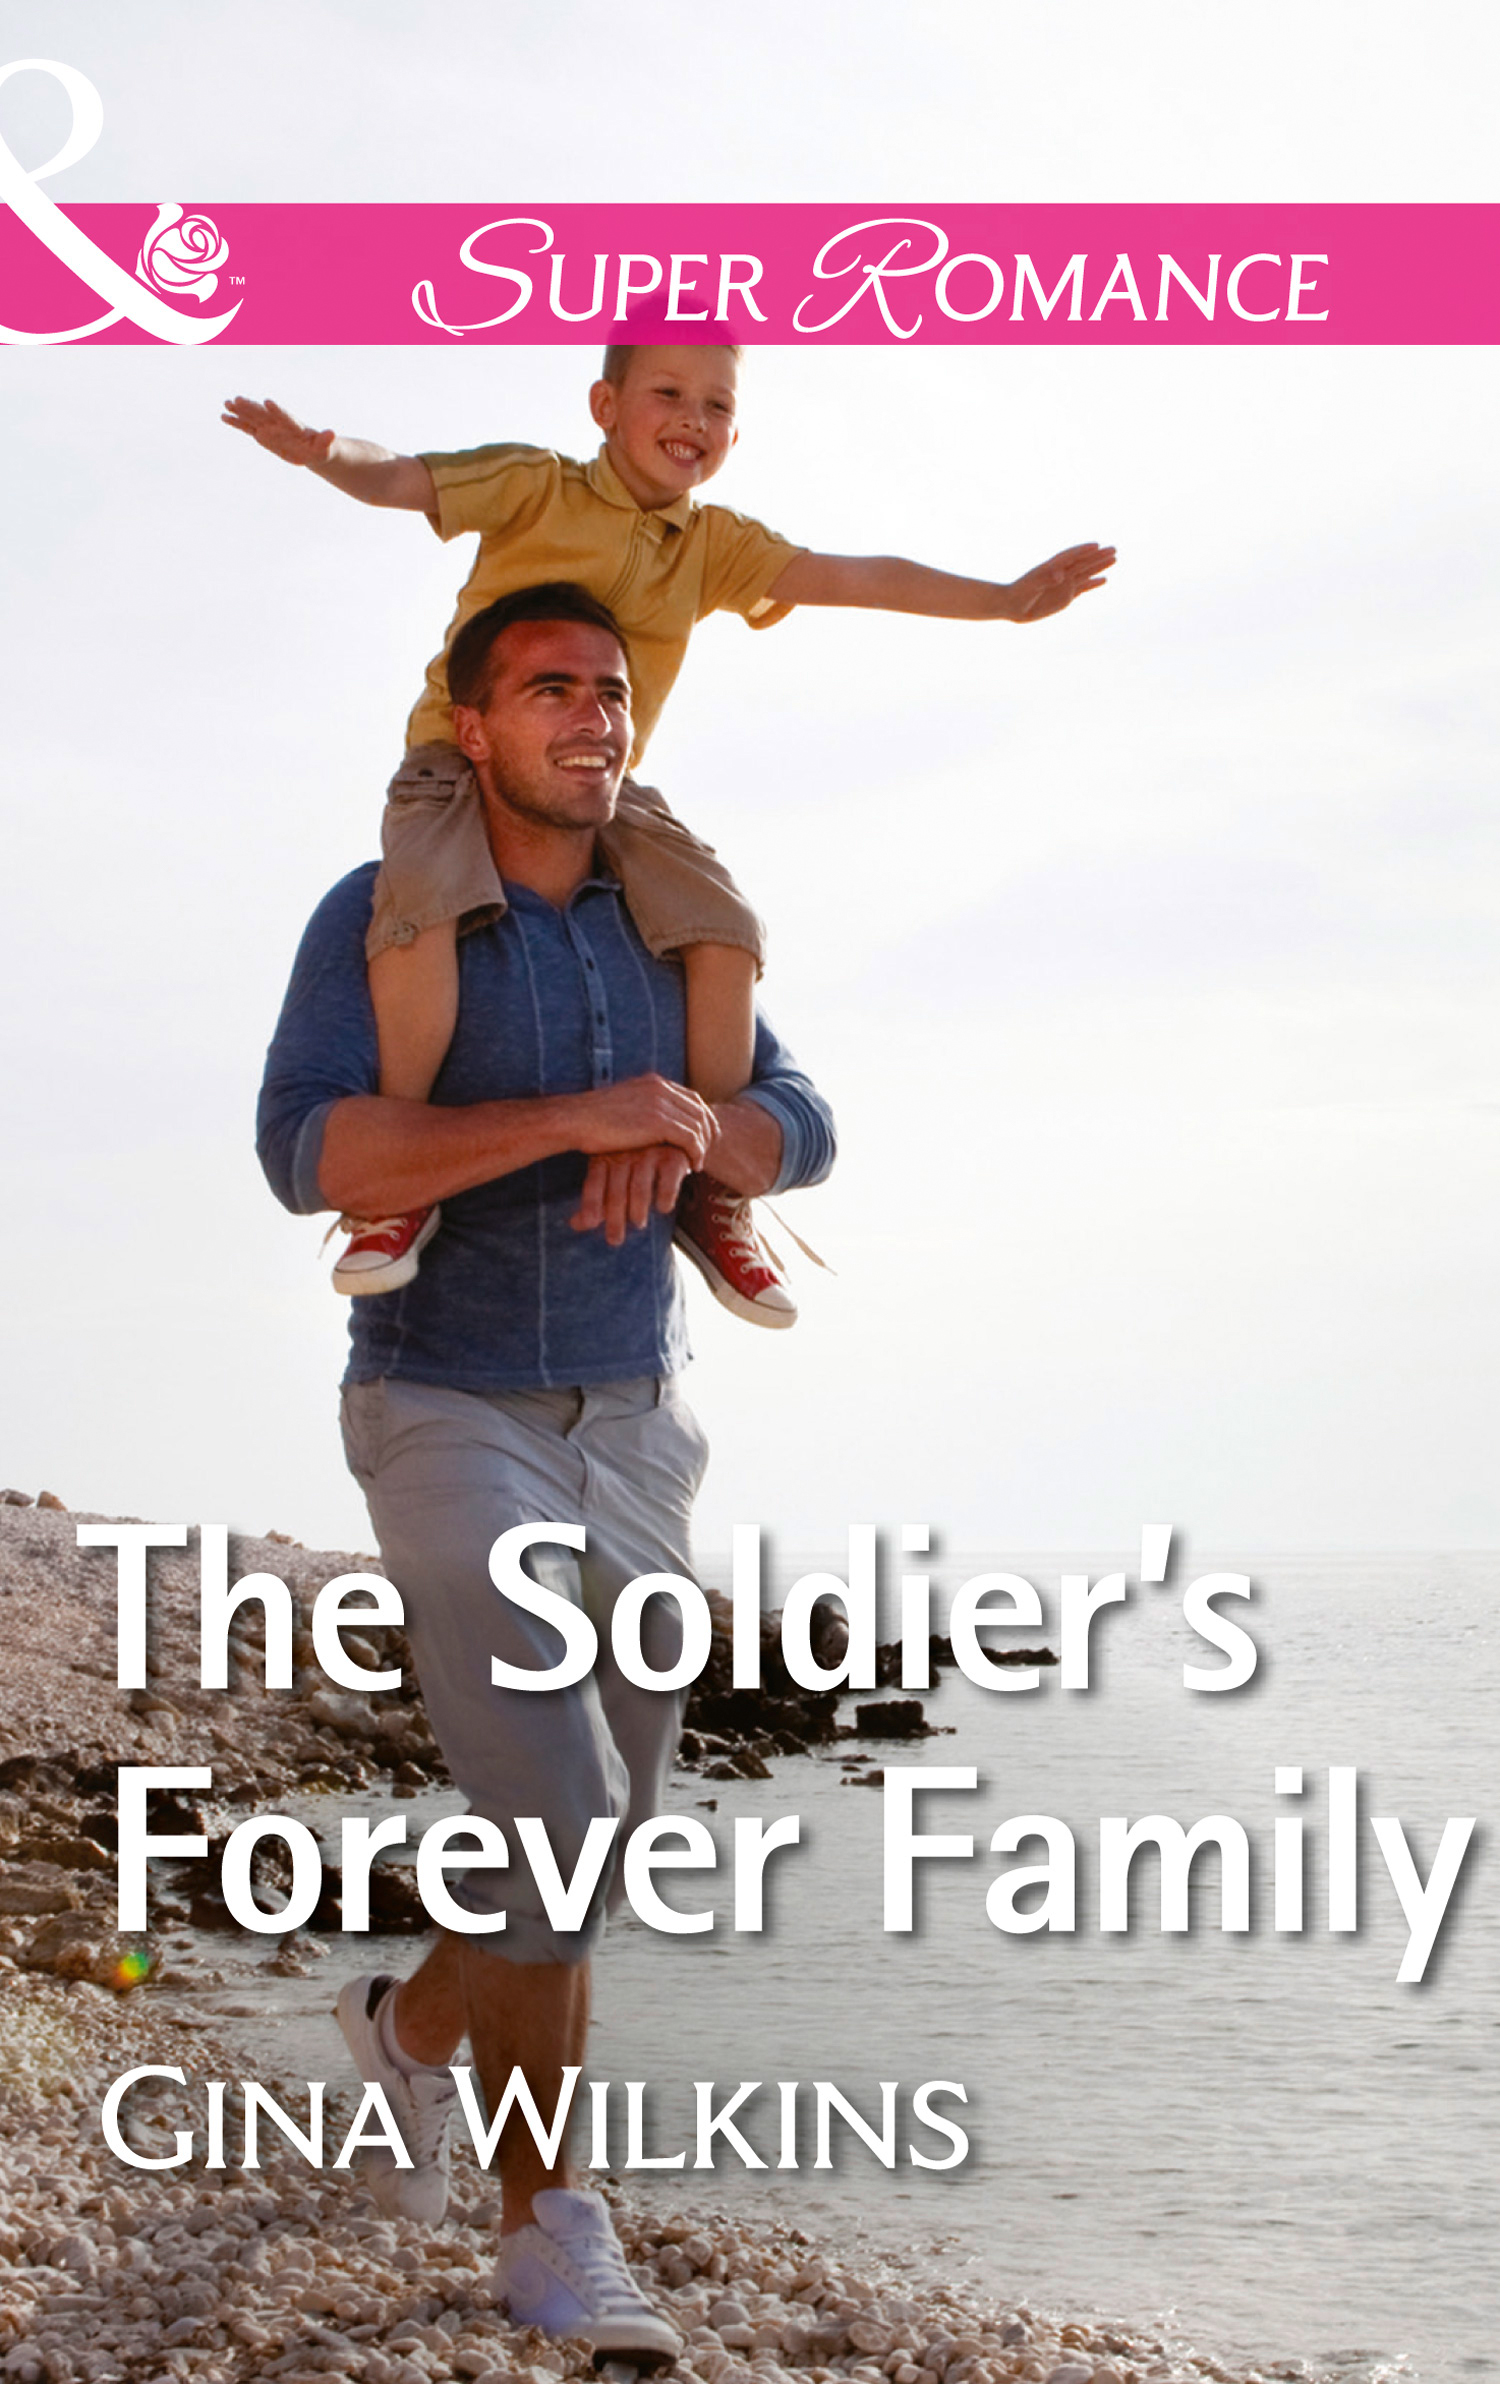 The Soldier's Forever Family